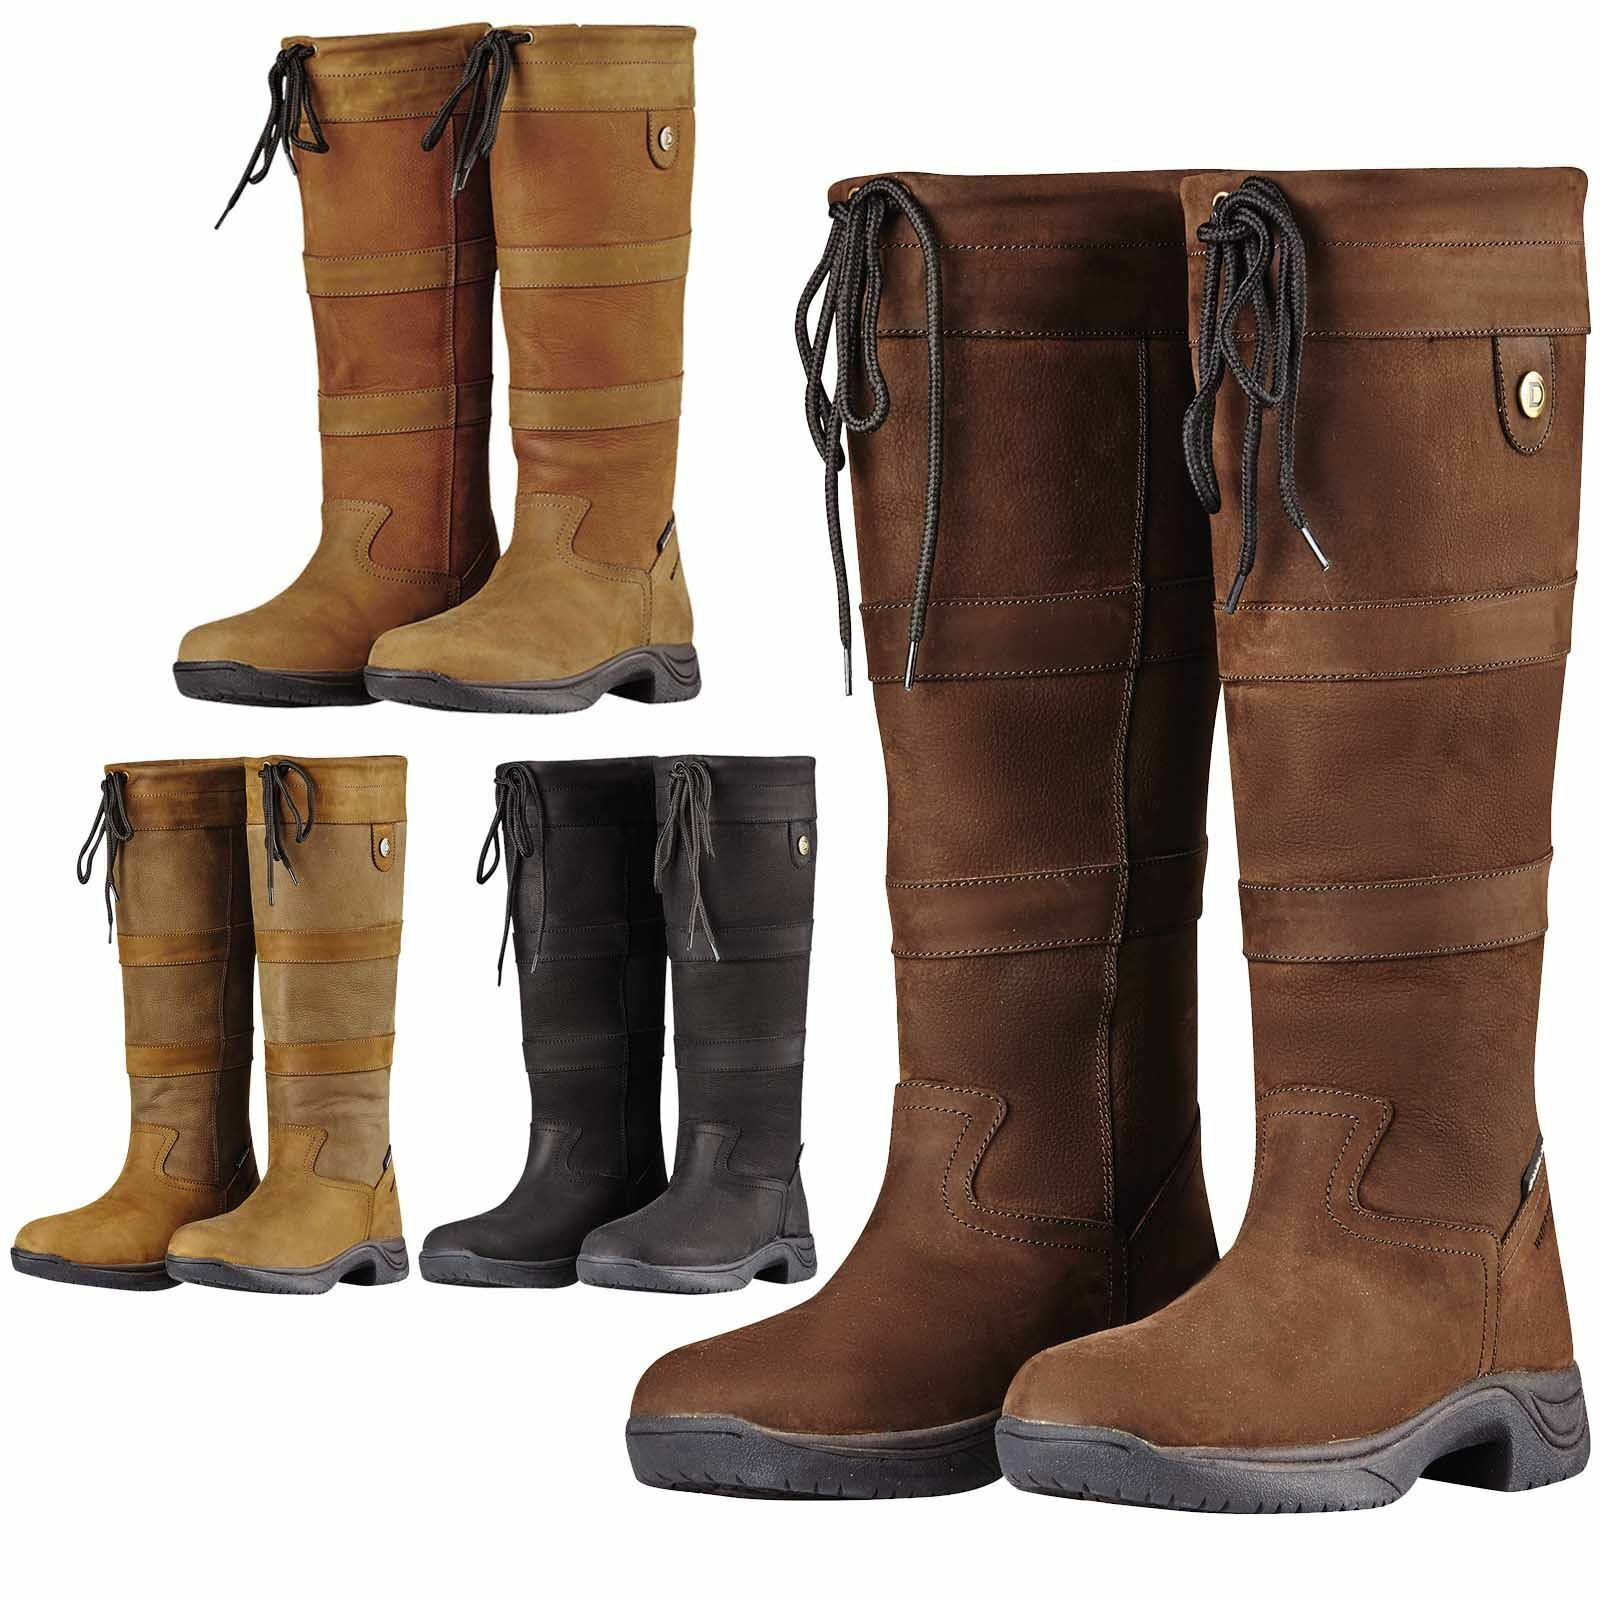 NEW Dublin River III Ladies Waterproof Dog Walking Horse Riding Country Boots